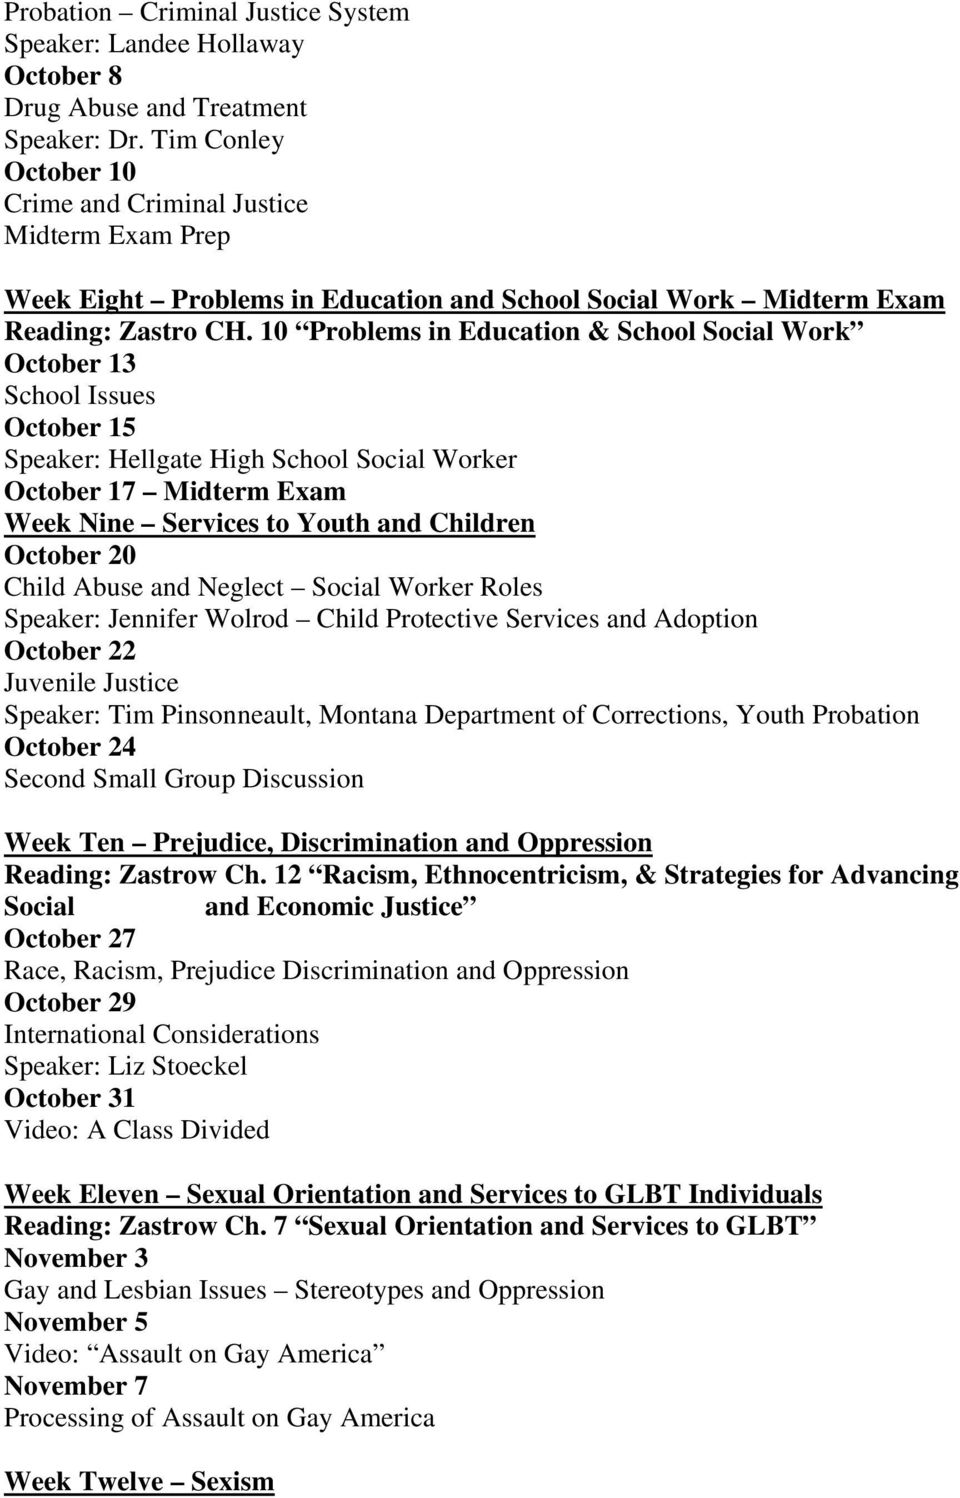 10 Problems in Education & School Social Work October 13 School Issues October 15 Speaker: Hellgate High School Social Worker October 17 Midterm Exam Week Nine Services to Youth and Children October